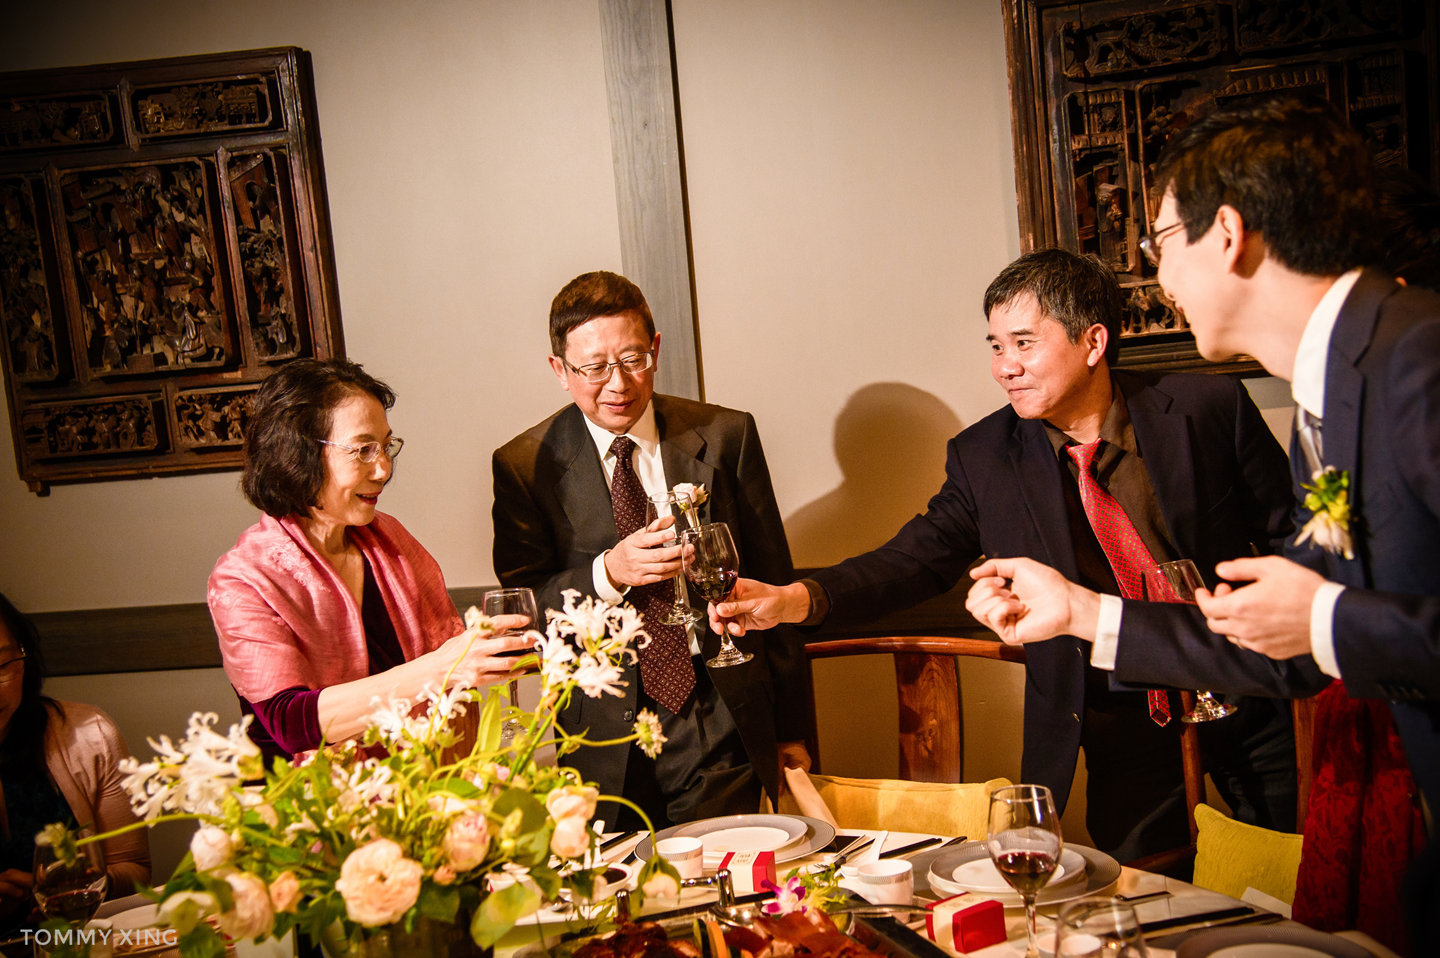 San Francisco Wedding Photography Valley Presbyterian Church WEDDING Tommy Xing Photography 洛杉矶旧金山婚礼婚纱照摄影师121.jpg